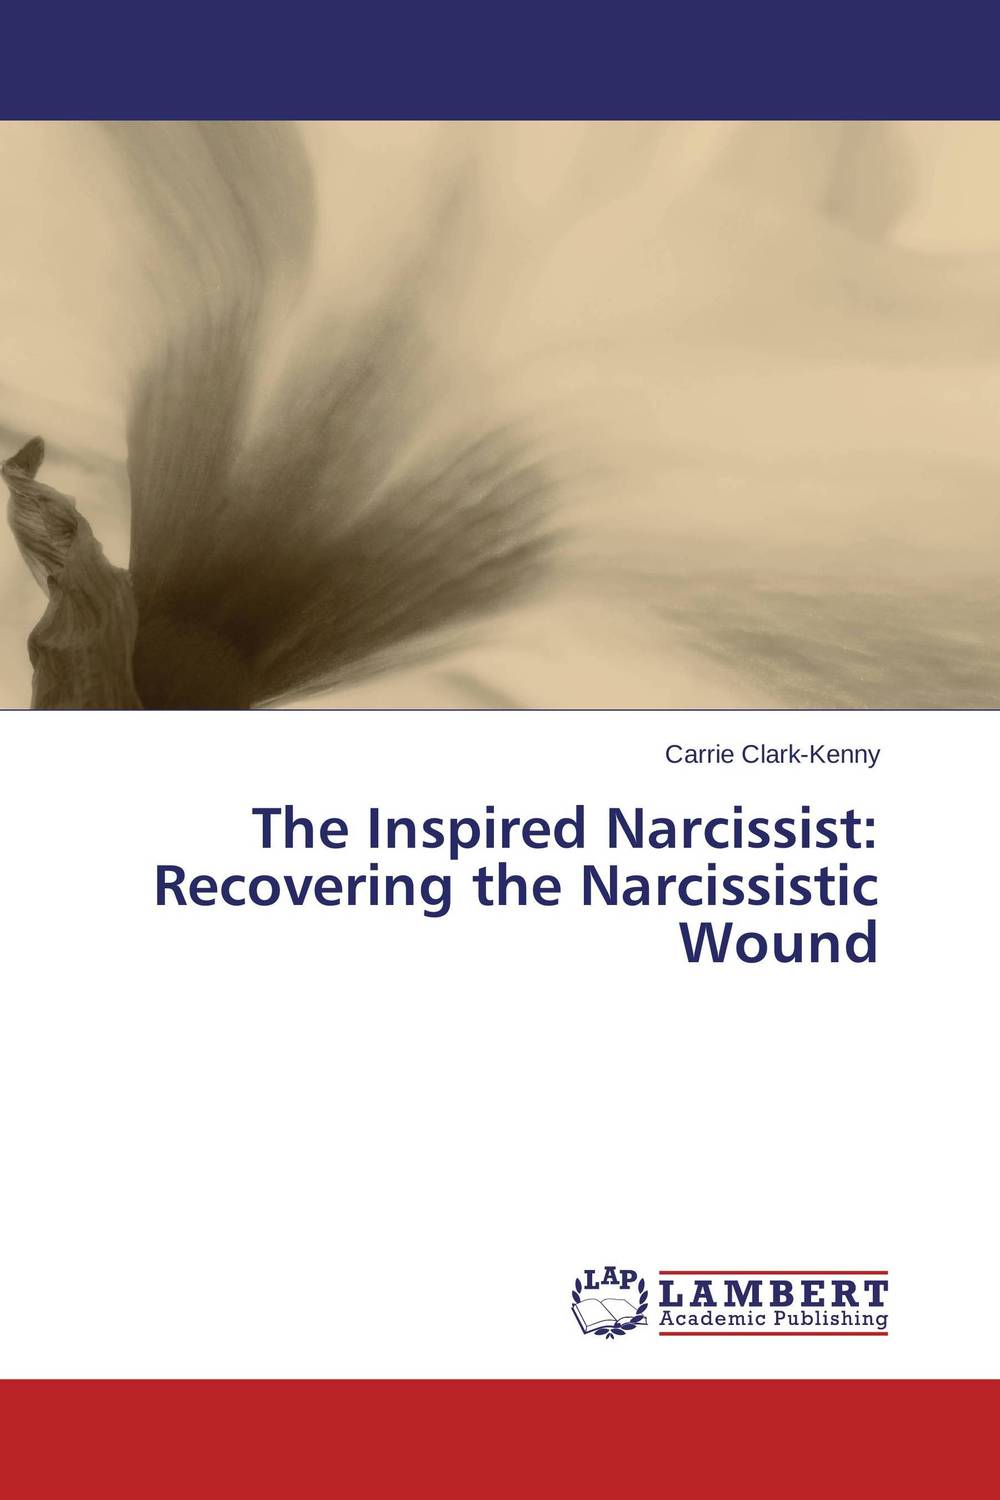 The Inspired Narcissist: Recovering the Narcissistic Wound